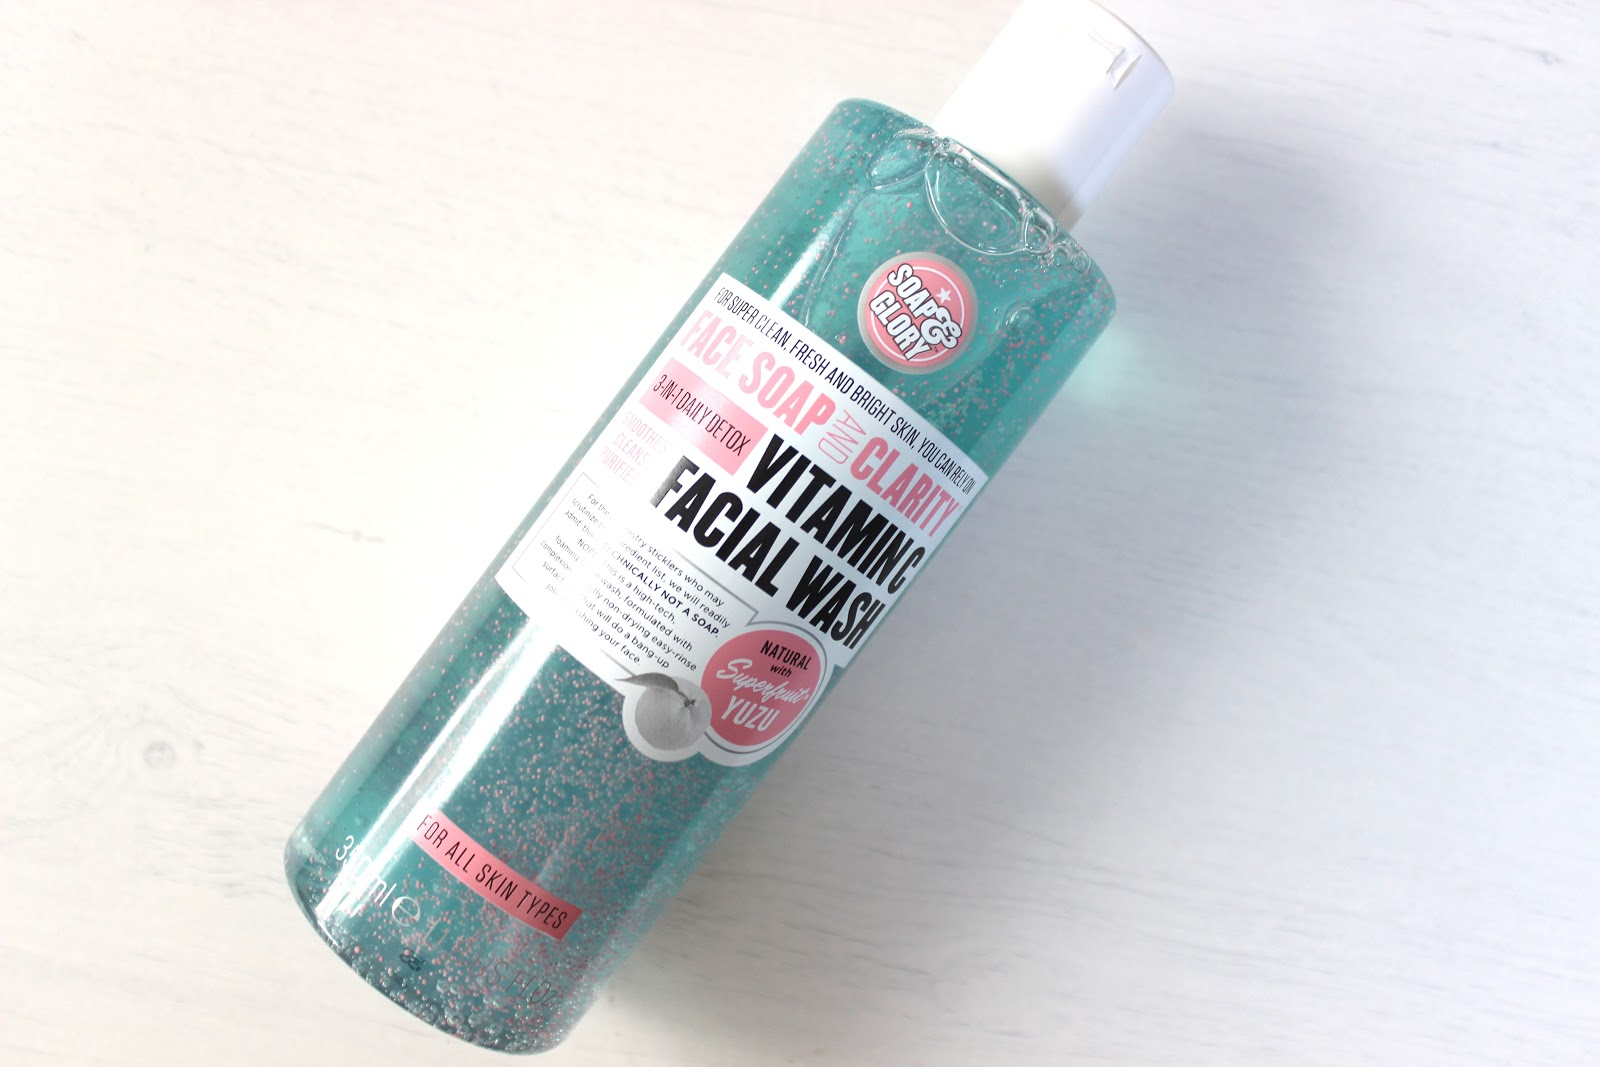 Face Soap & Clarity Facial Wash by Soap & Glory #22